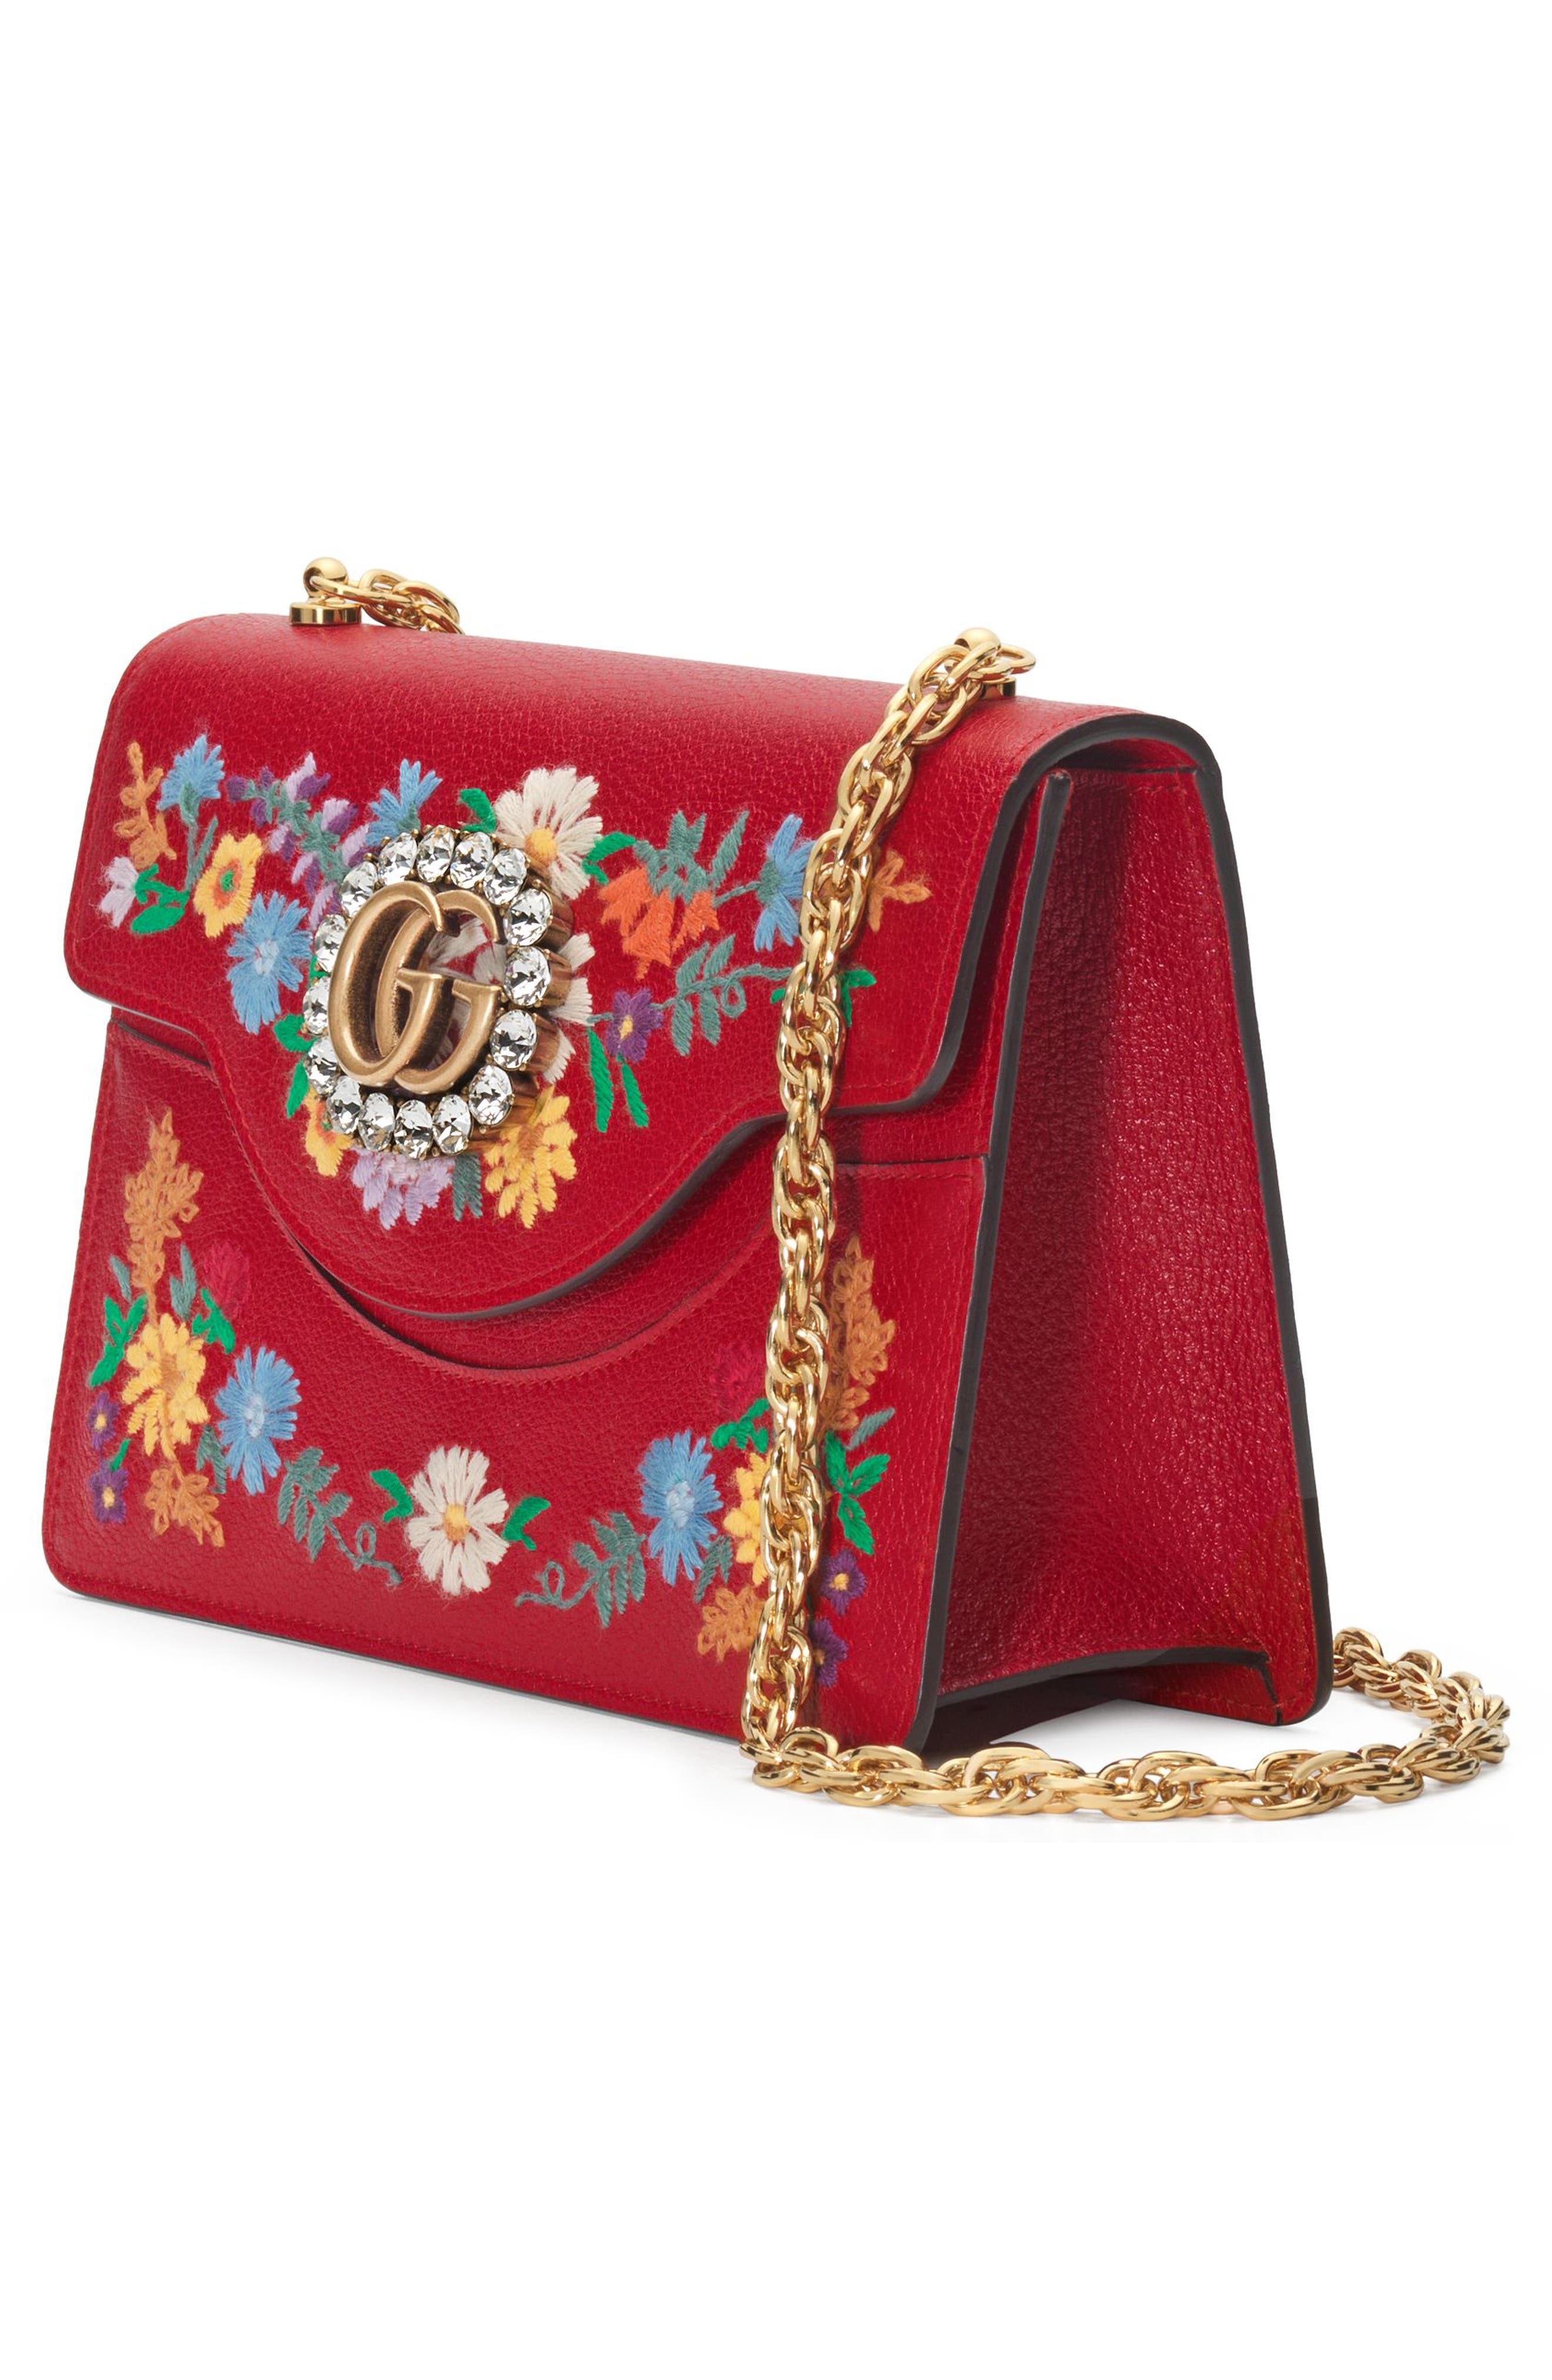 Small Linea Ricami Floral Embroidered Shoulder Bag,                             Alternate thumbnail 2, color,                             Hibiscus Red Multi